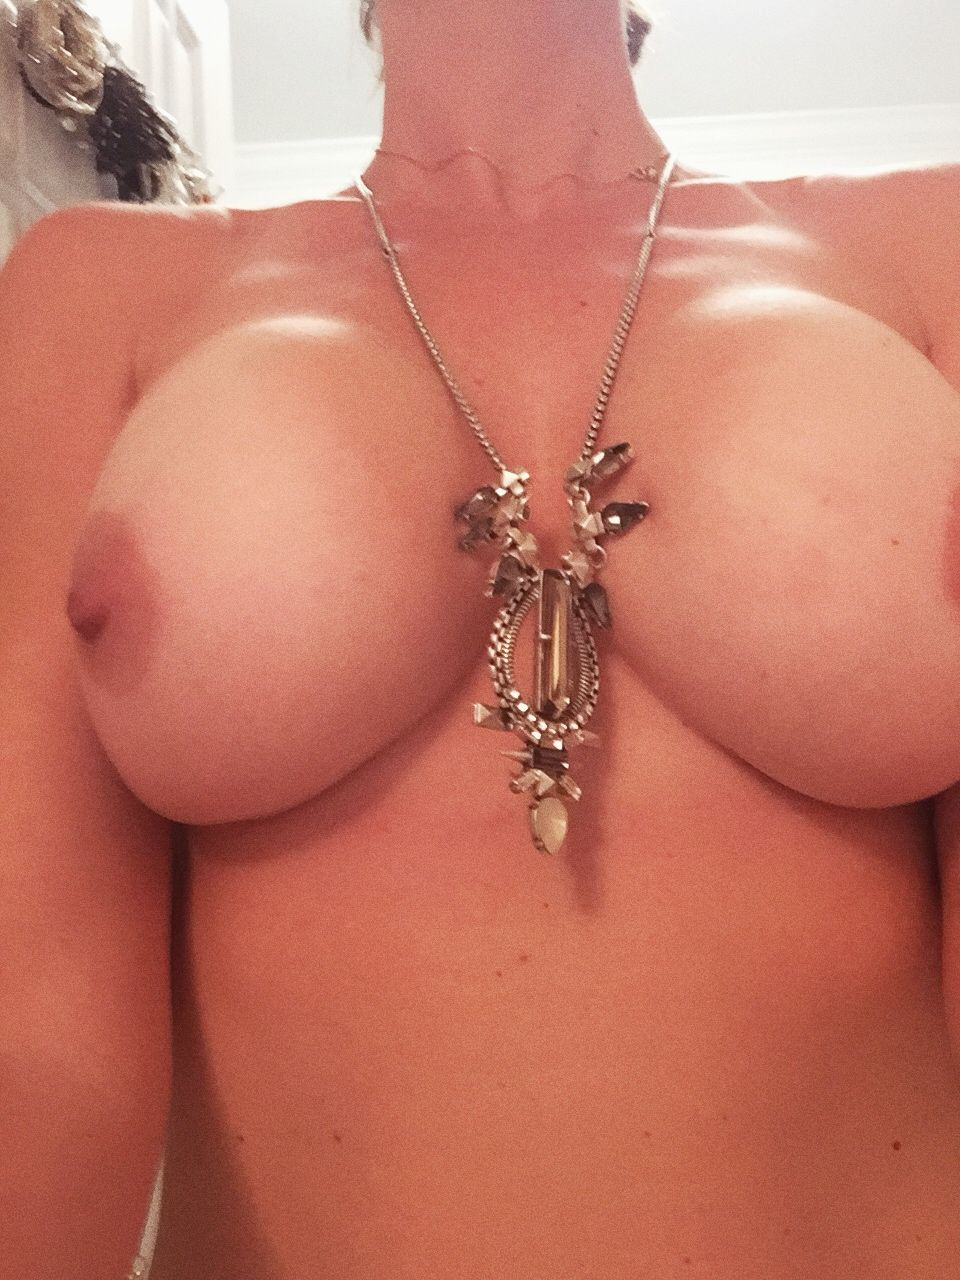 [Wife Porn Pics] Wi(f)e sent me some pics while she gets ready to go out with girlfriends…39yo